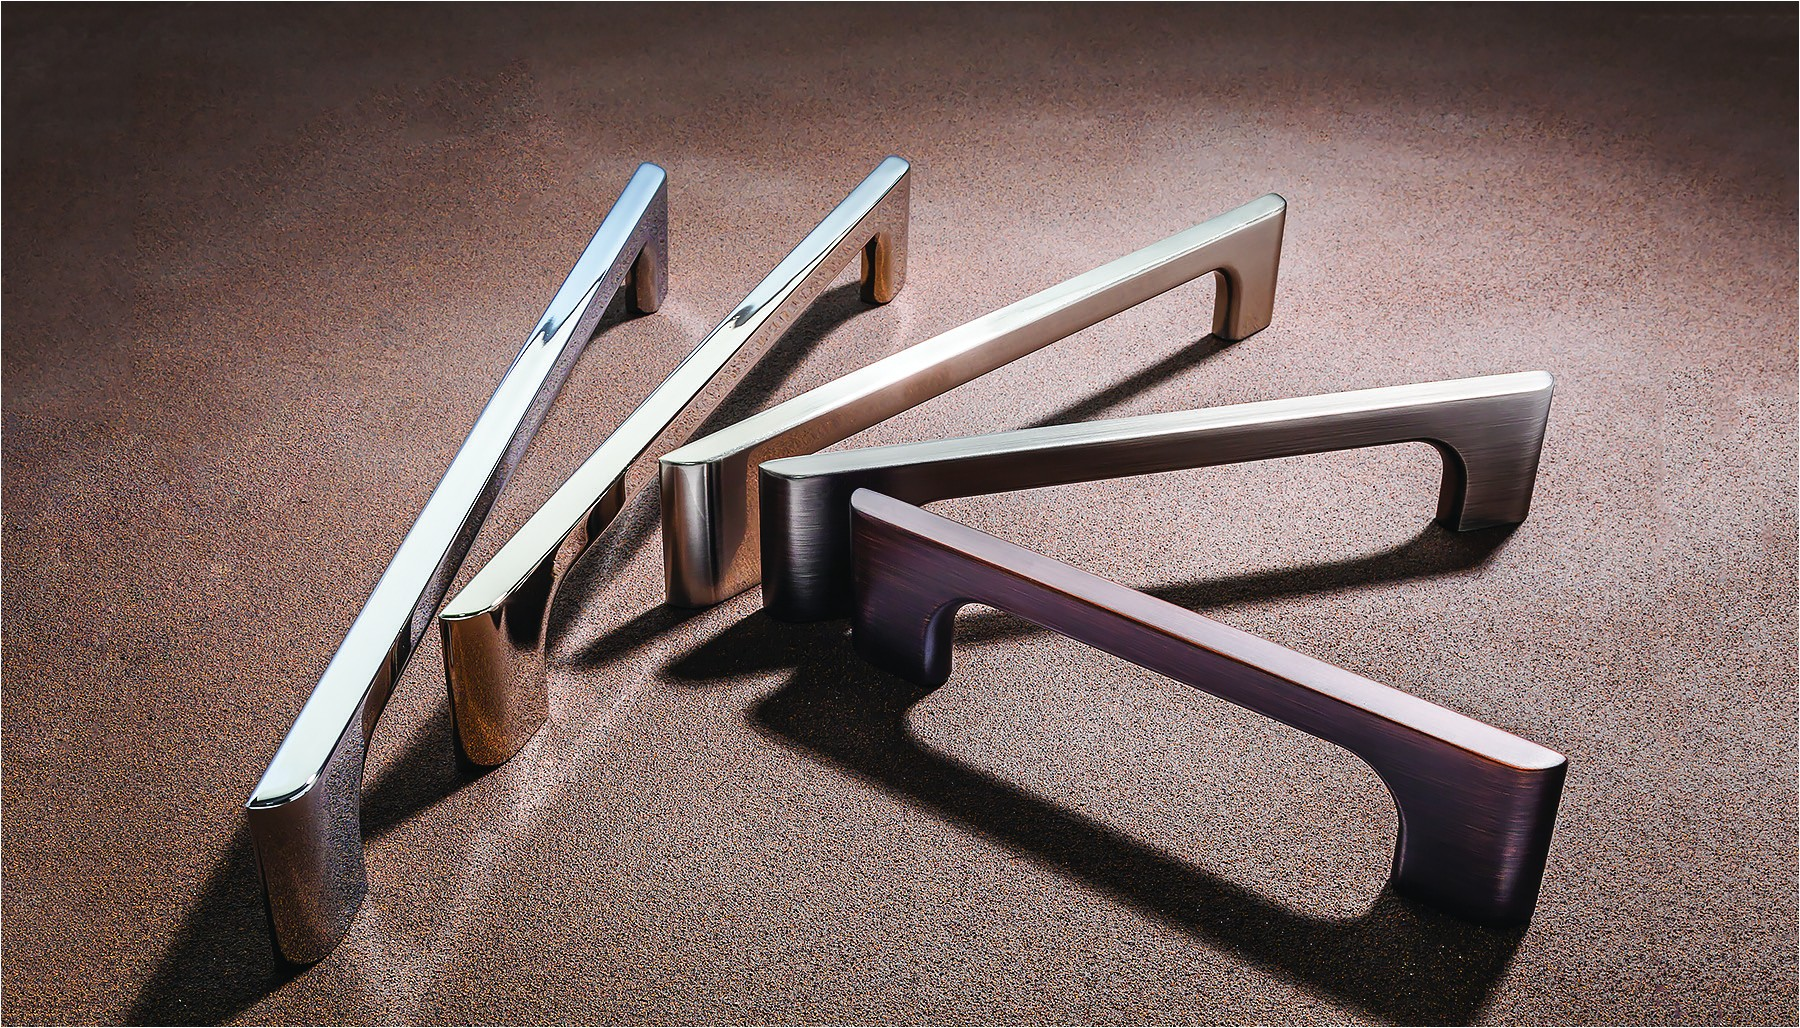 jeffrey alexander hardware launches new contemporary cabinet pulls collection